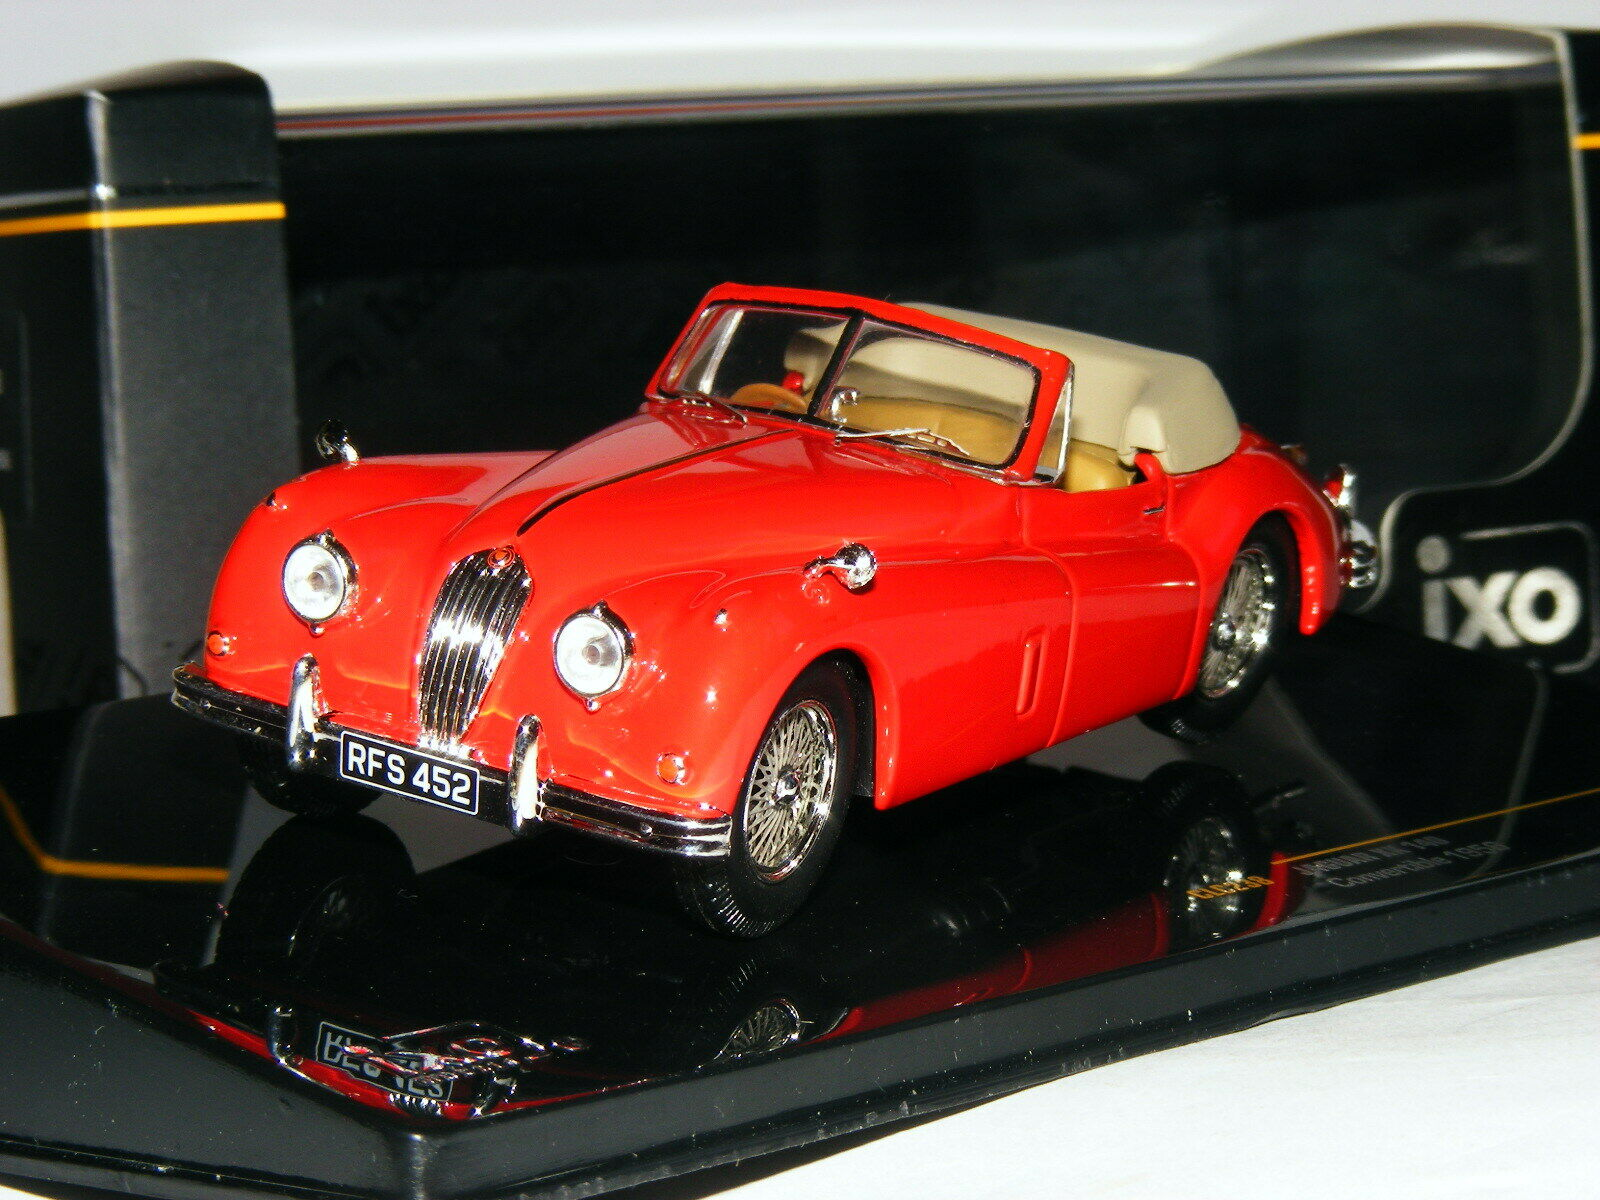 IXO CLC238 1956 Jaguar XK140 Drop Head Coupe Red 1 43